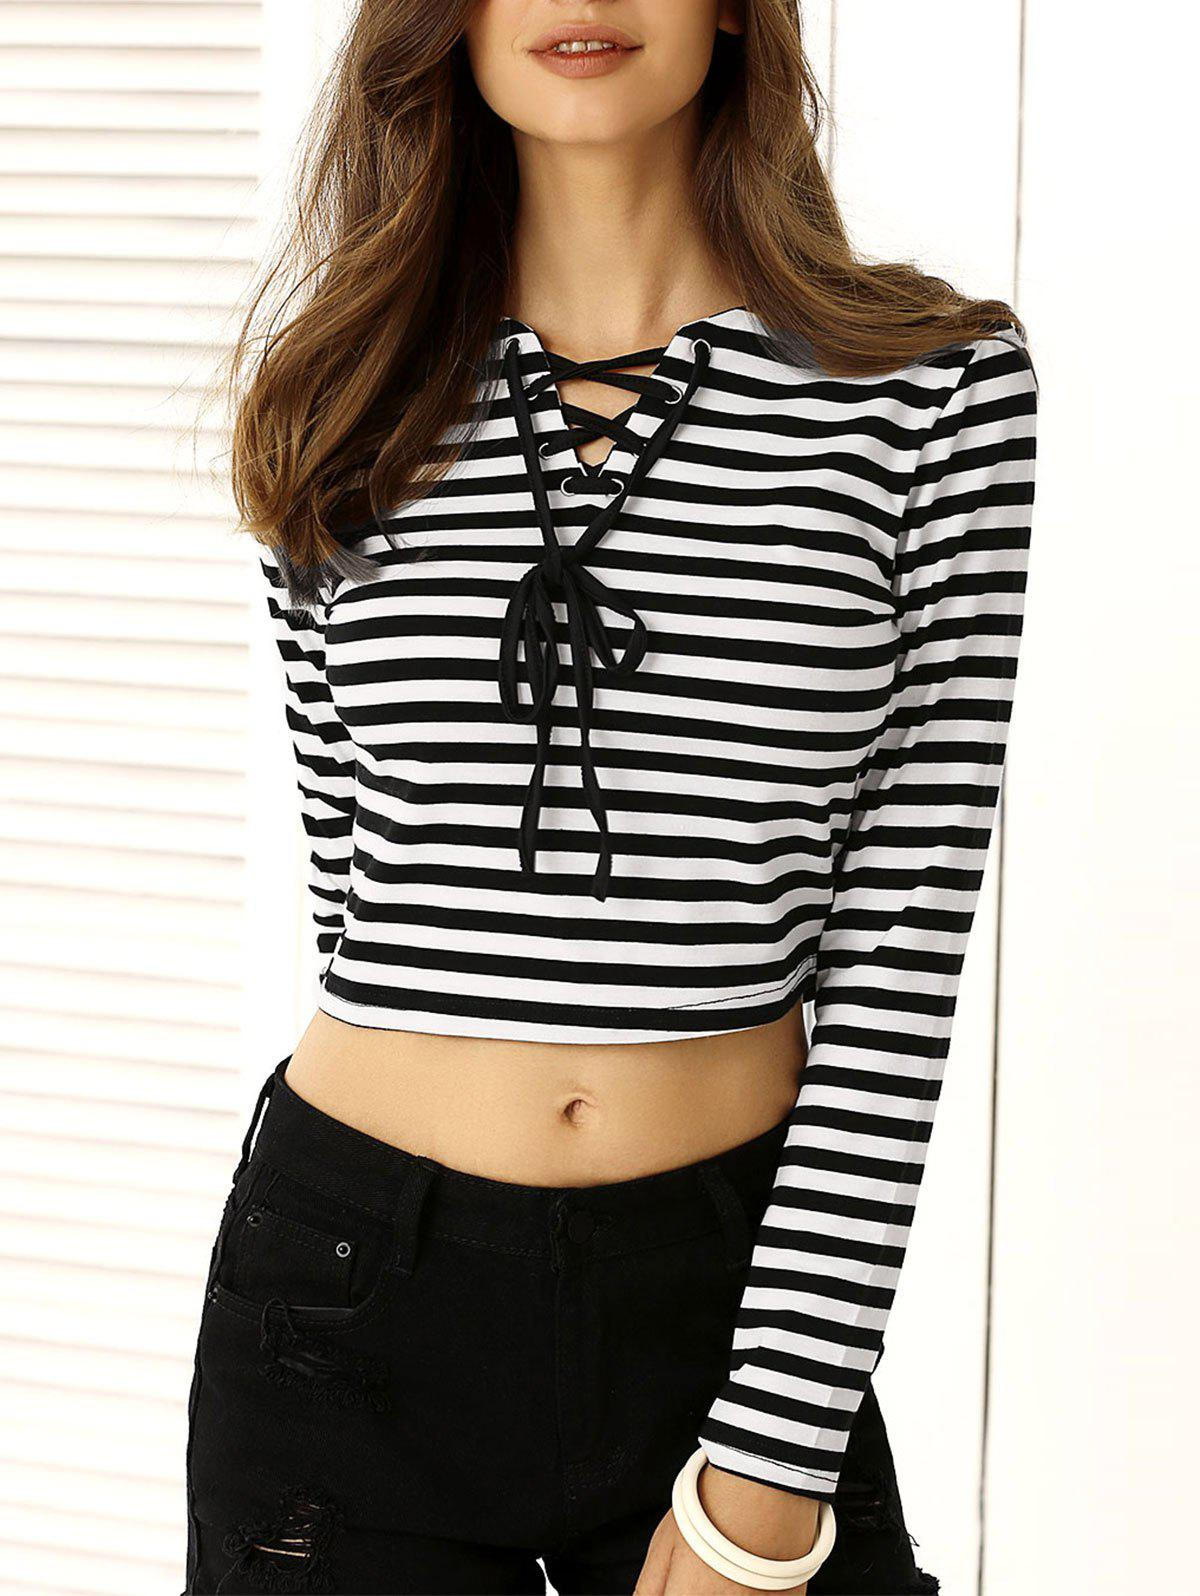 Chic Striped Lace Up Crop Top For Women - WHITE/BLACK L